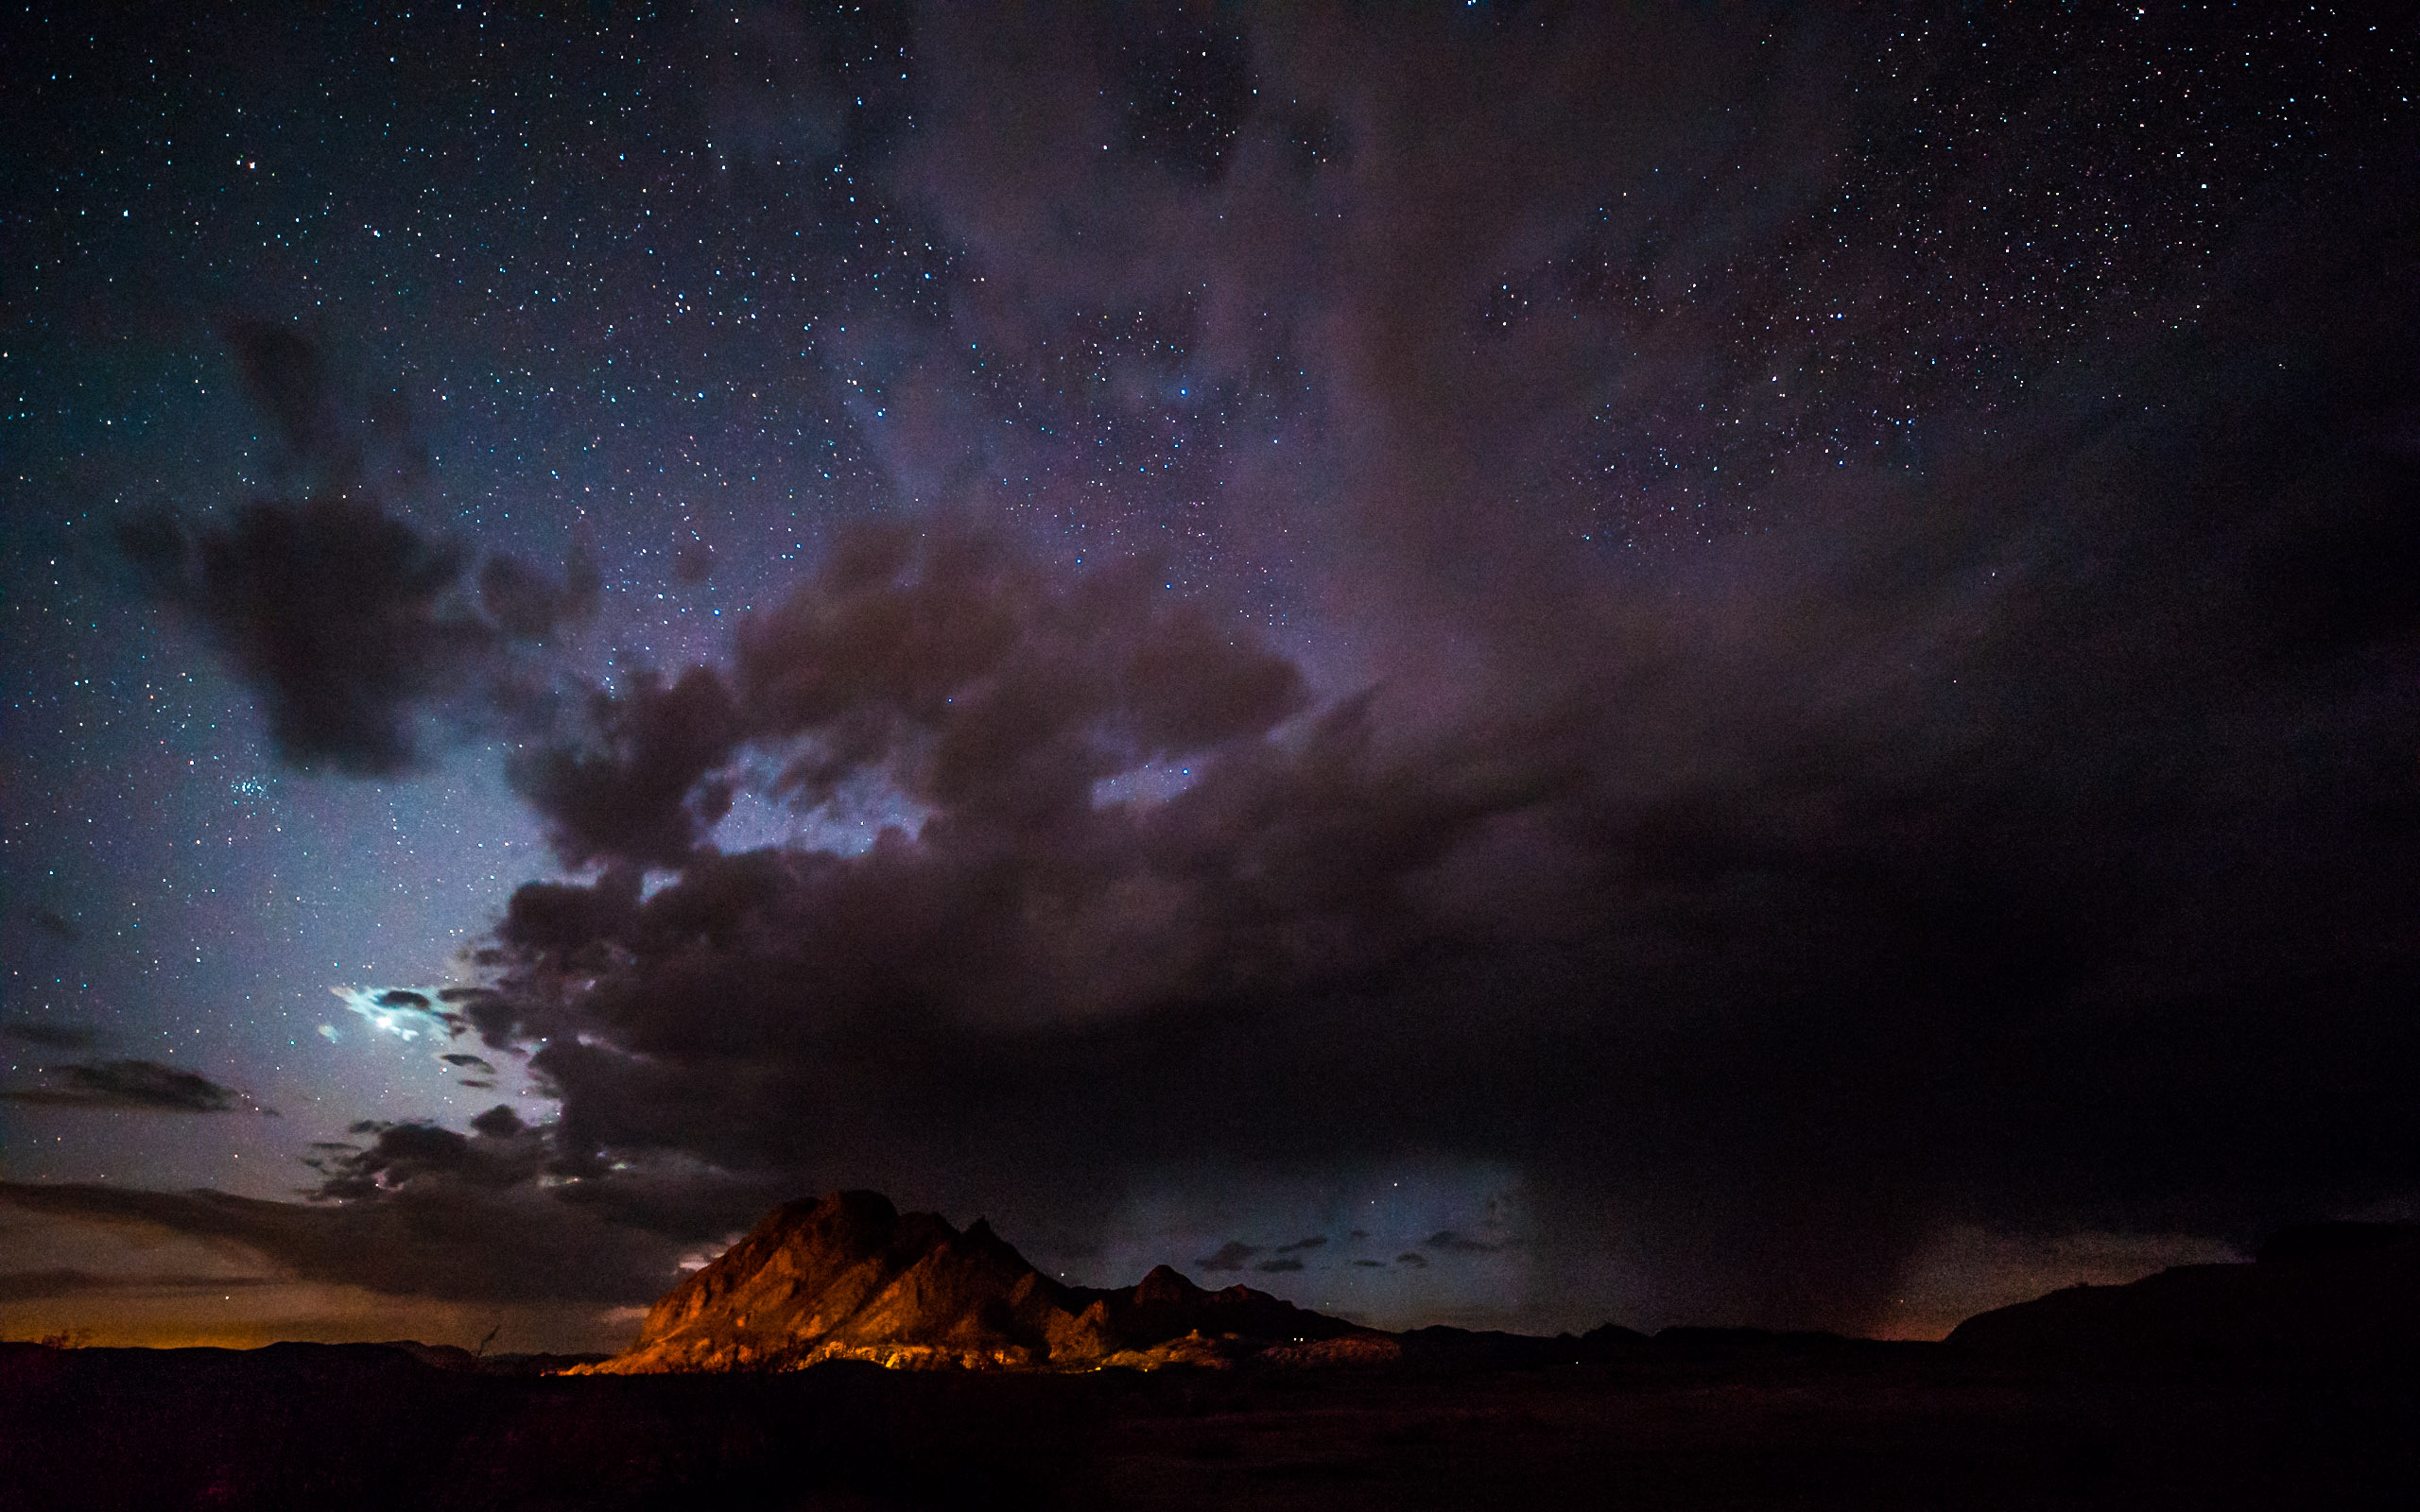 fire mountain & thunderstorm